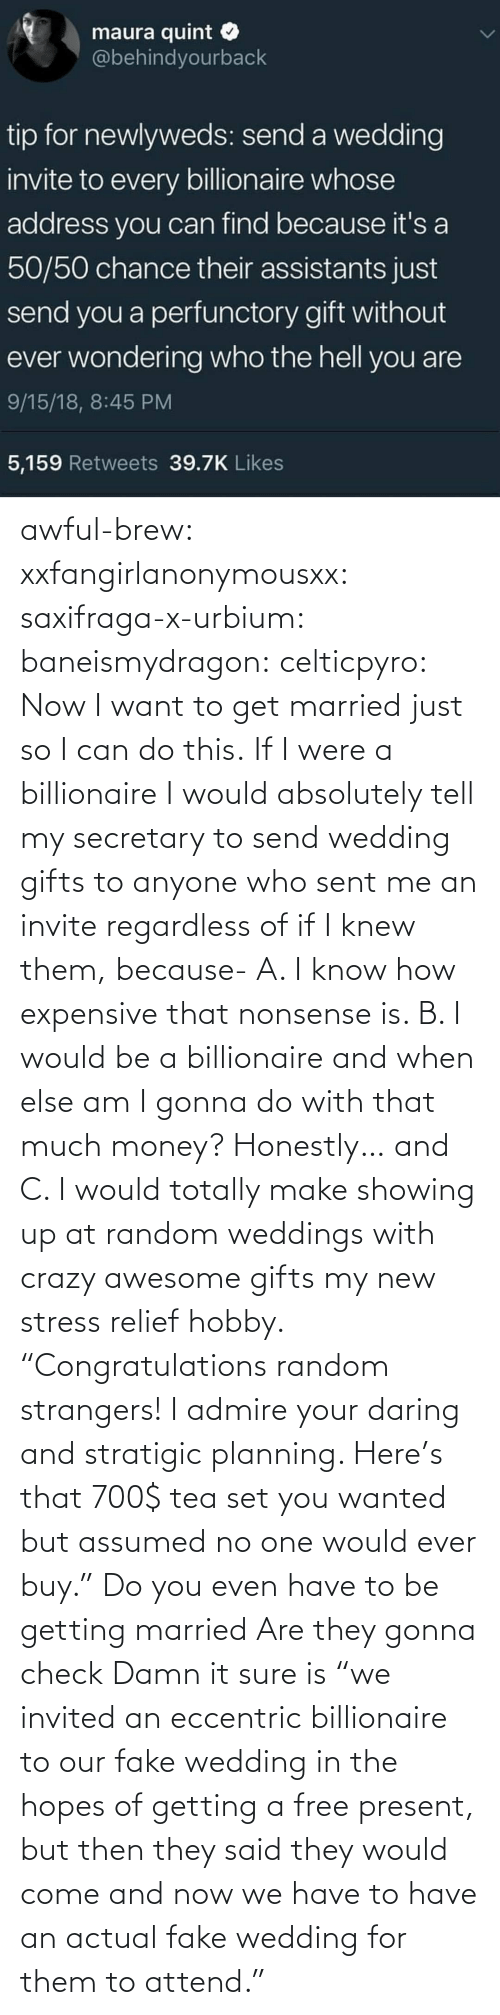 "Have An: awful-brew:  xxfangirlanonymousxx:  saxifraga-x-urbium:  baneismydragon:  celticpyro: Now I want to get married just so I can do this.  If I were a billionaire I would absolutely tell my secretary to send wedding gifts to anyone who sent me an invite regardless of if I knew them, because- A. I know how expensive that nonsense is. B. I would be a billionaire and when else am I gonna do with that much money? Honestly… and C. I would totally make showing up at random weddings with crazy awesome gifts my new stress relief hobby. ""Congratulations random strangers! I admire your daring and stratigic planning. Here's that 700$ tea set you wanted but assumed no one would ever buy.""   Do you even have to be getting married Are they gonna check   Damn it sure is  ""we invited an eccentric billionaire to our fake wedding in the hopes of getting a free present, but then they said they would come and now we have to have an actual fake wedding for them to attend."""